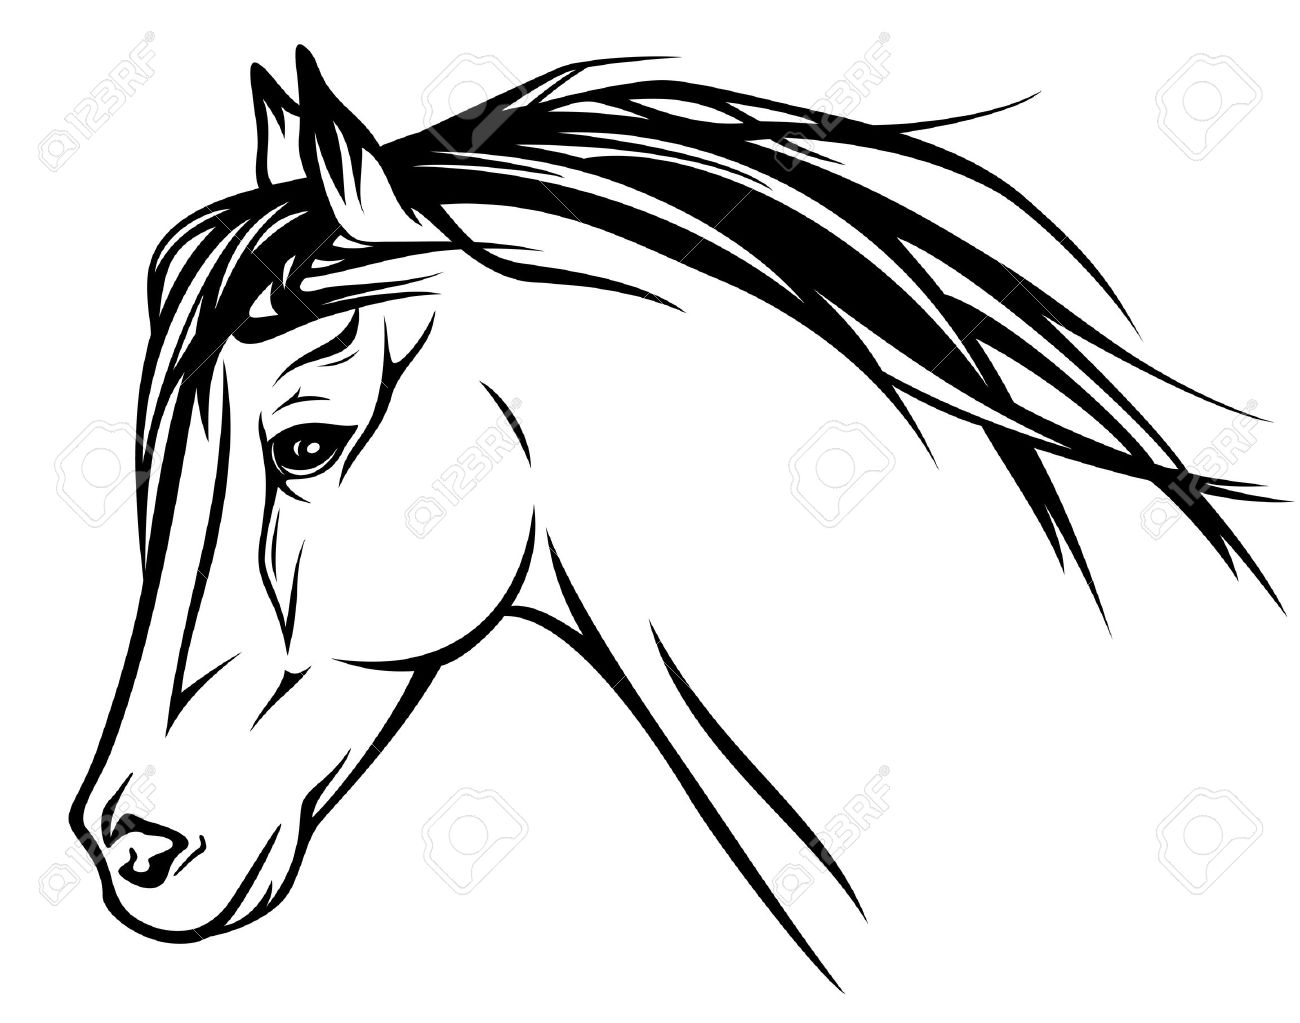 running horse head black and white outline royalty free cliparts rh 123rf com horse head vector free horse head vector free